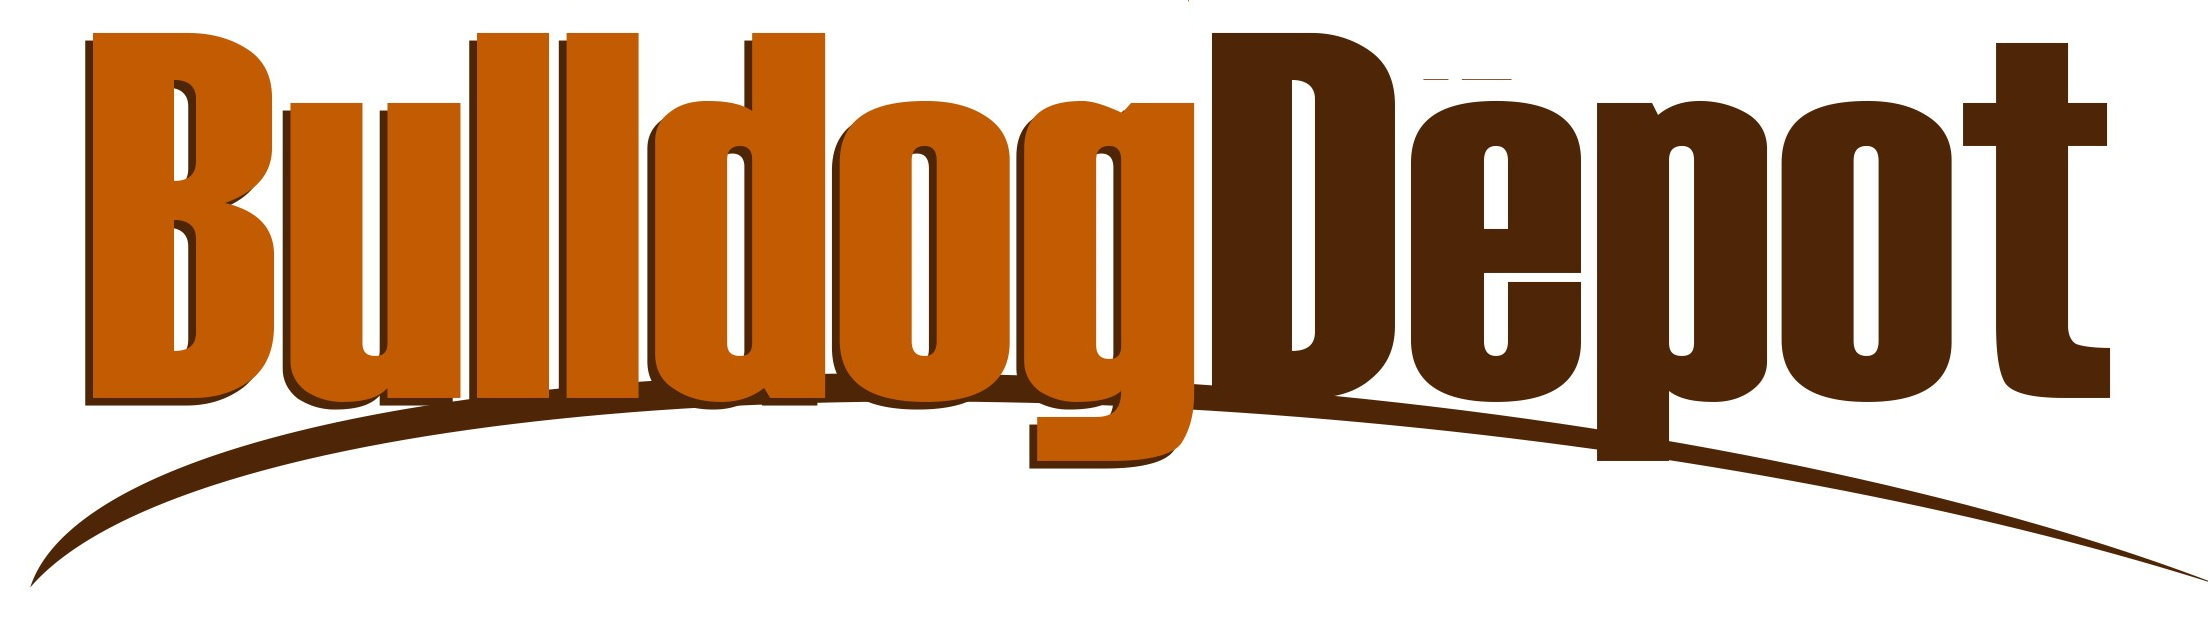 bulldog-depot-logo-text-only.jpg